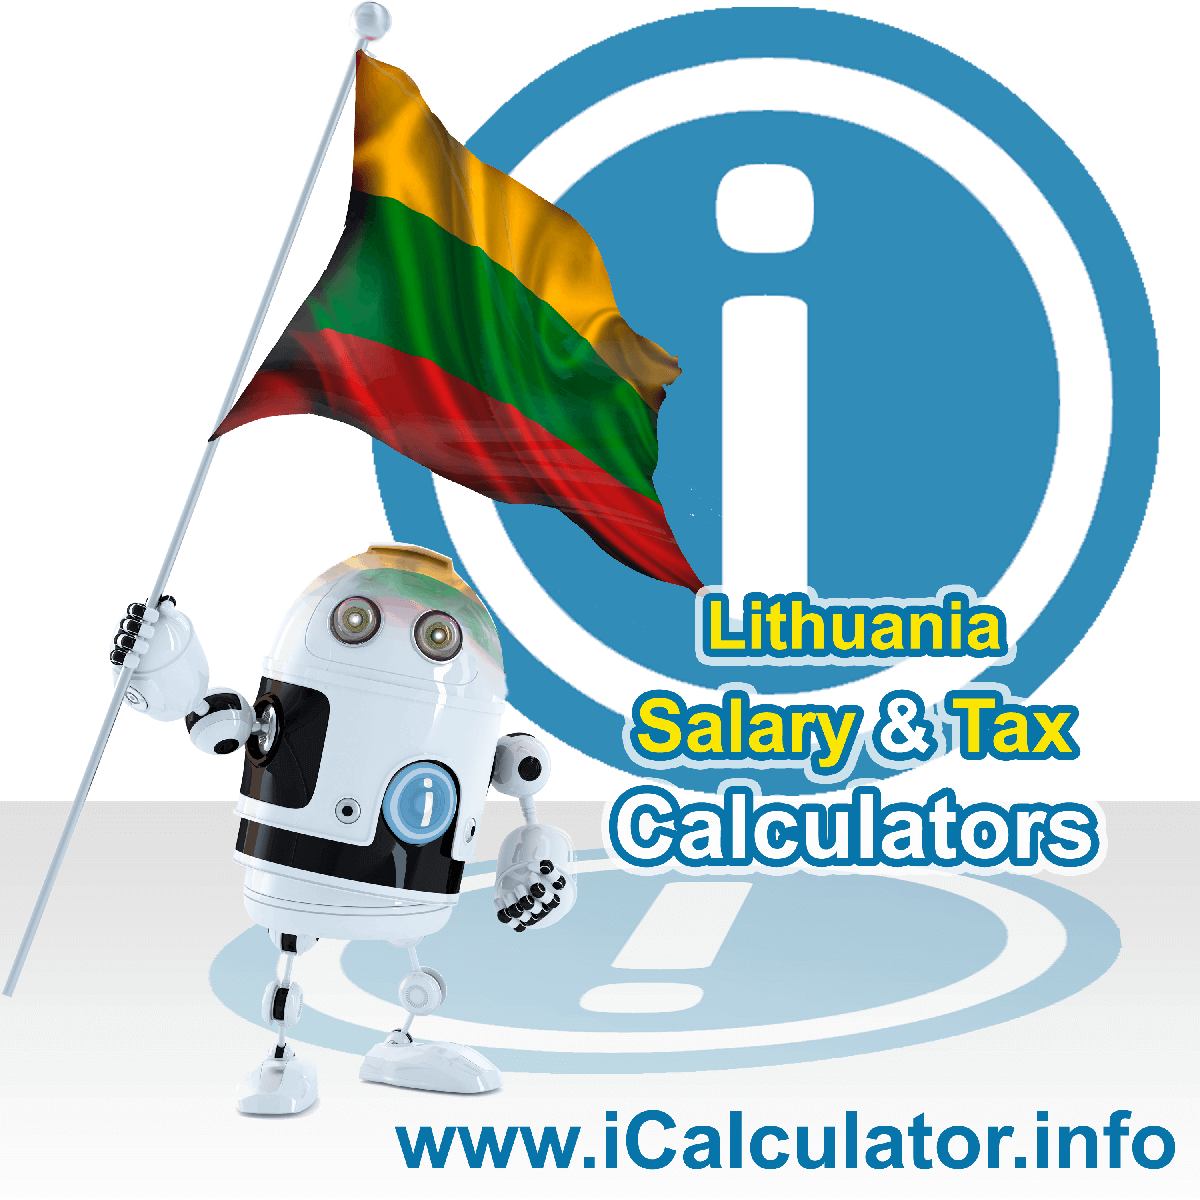 Lithuania Wage Calculator. This image shows the Lithuania flag and information relating to the tax formula for the Lithuania Tax Calculator